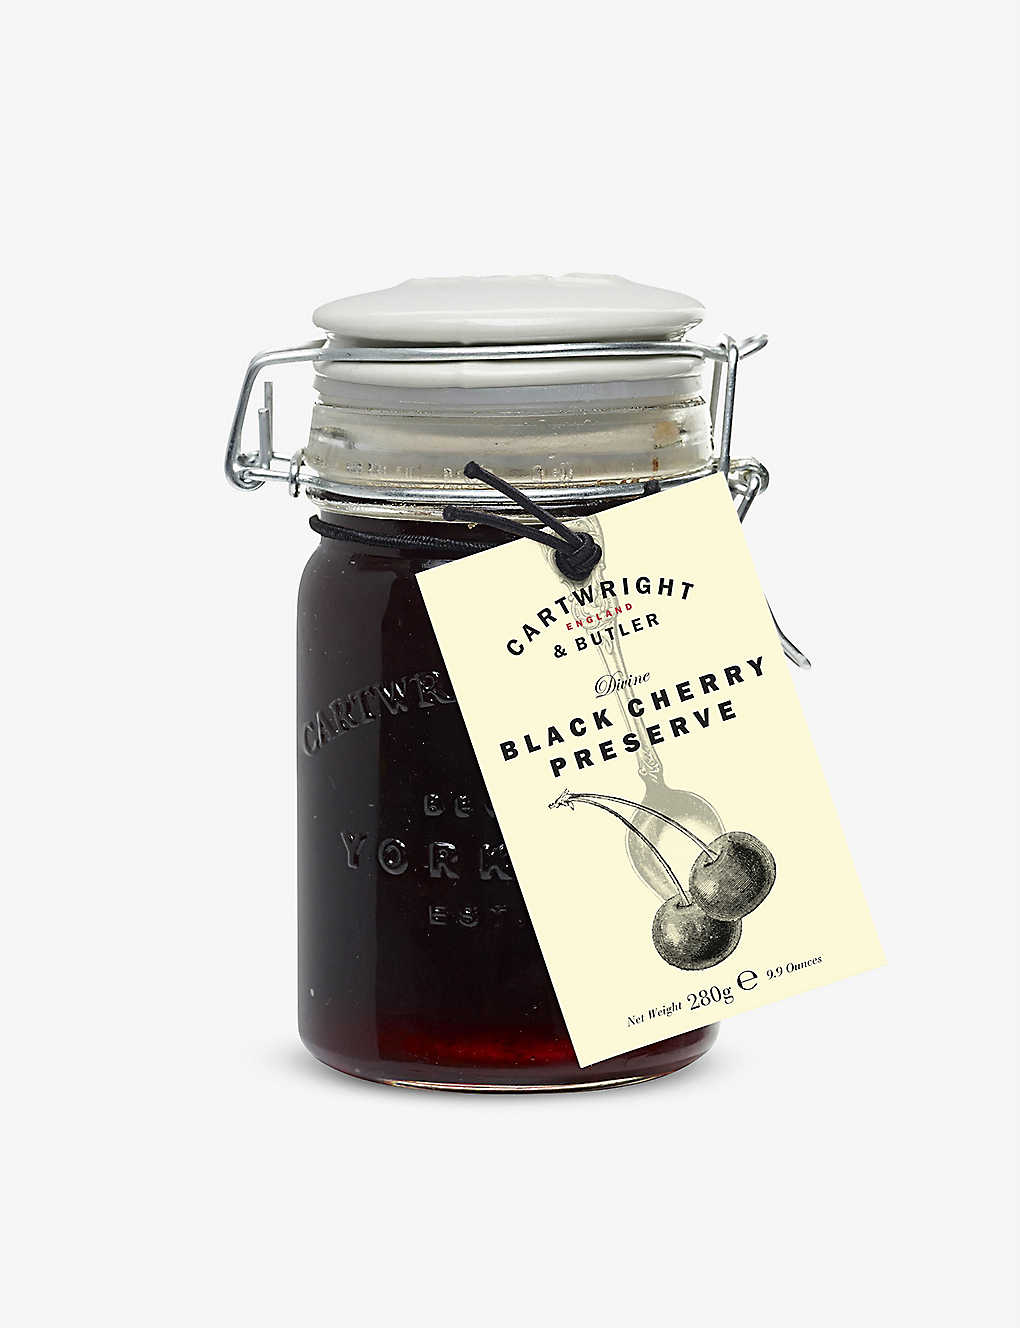 CARTWRIGHT & BUTLER: Black Cherry Preserve 280g